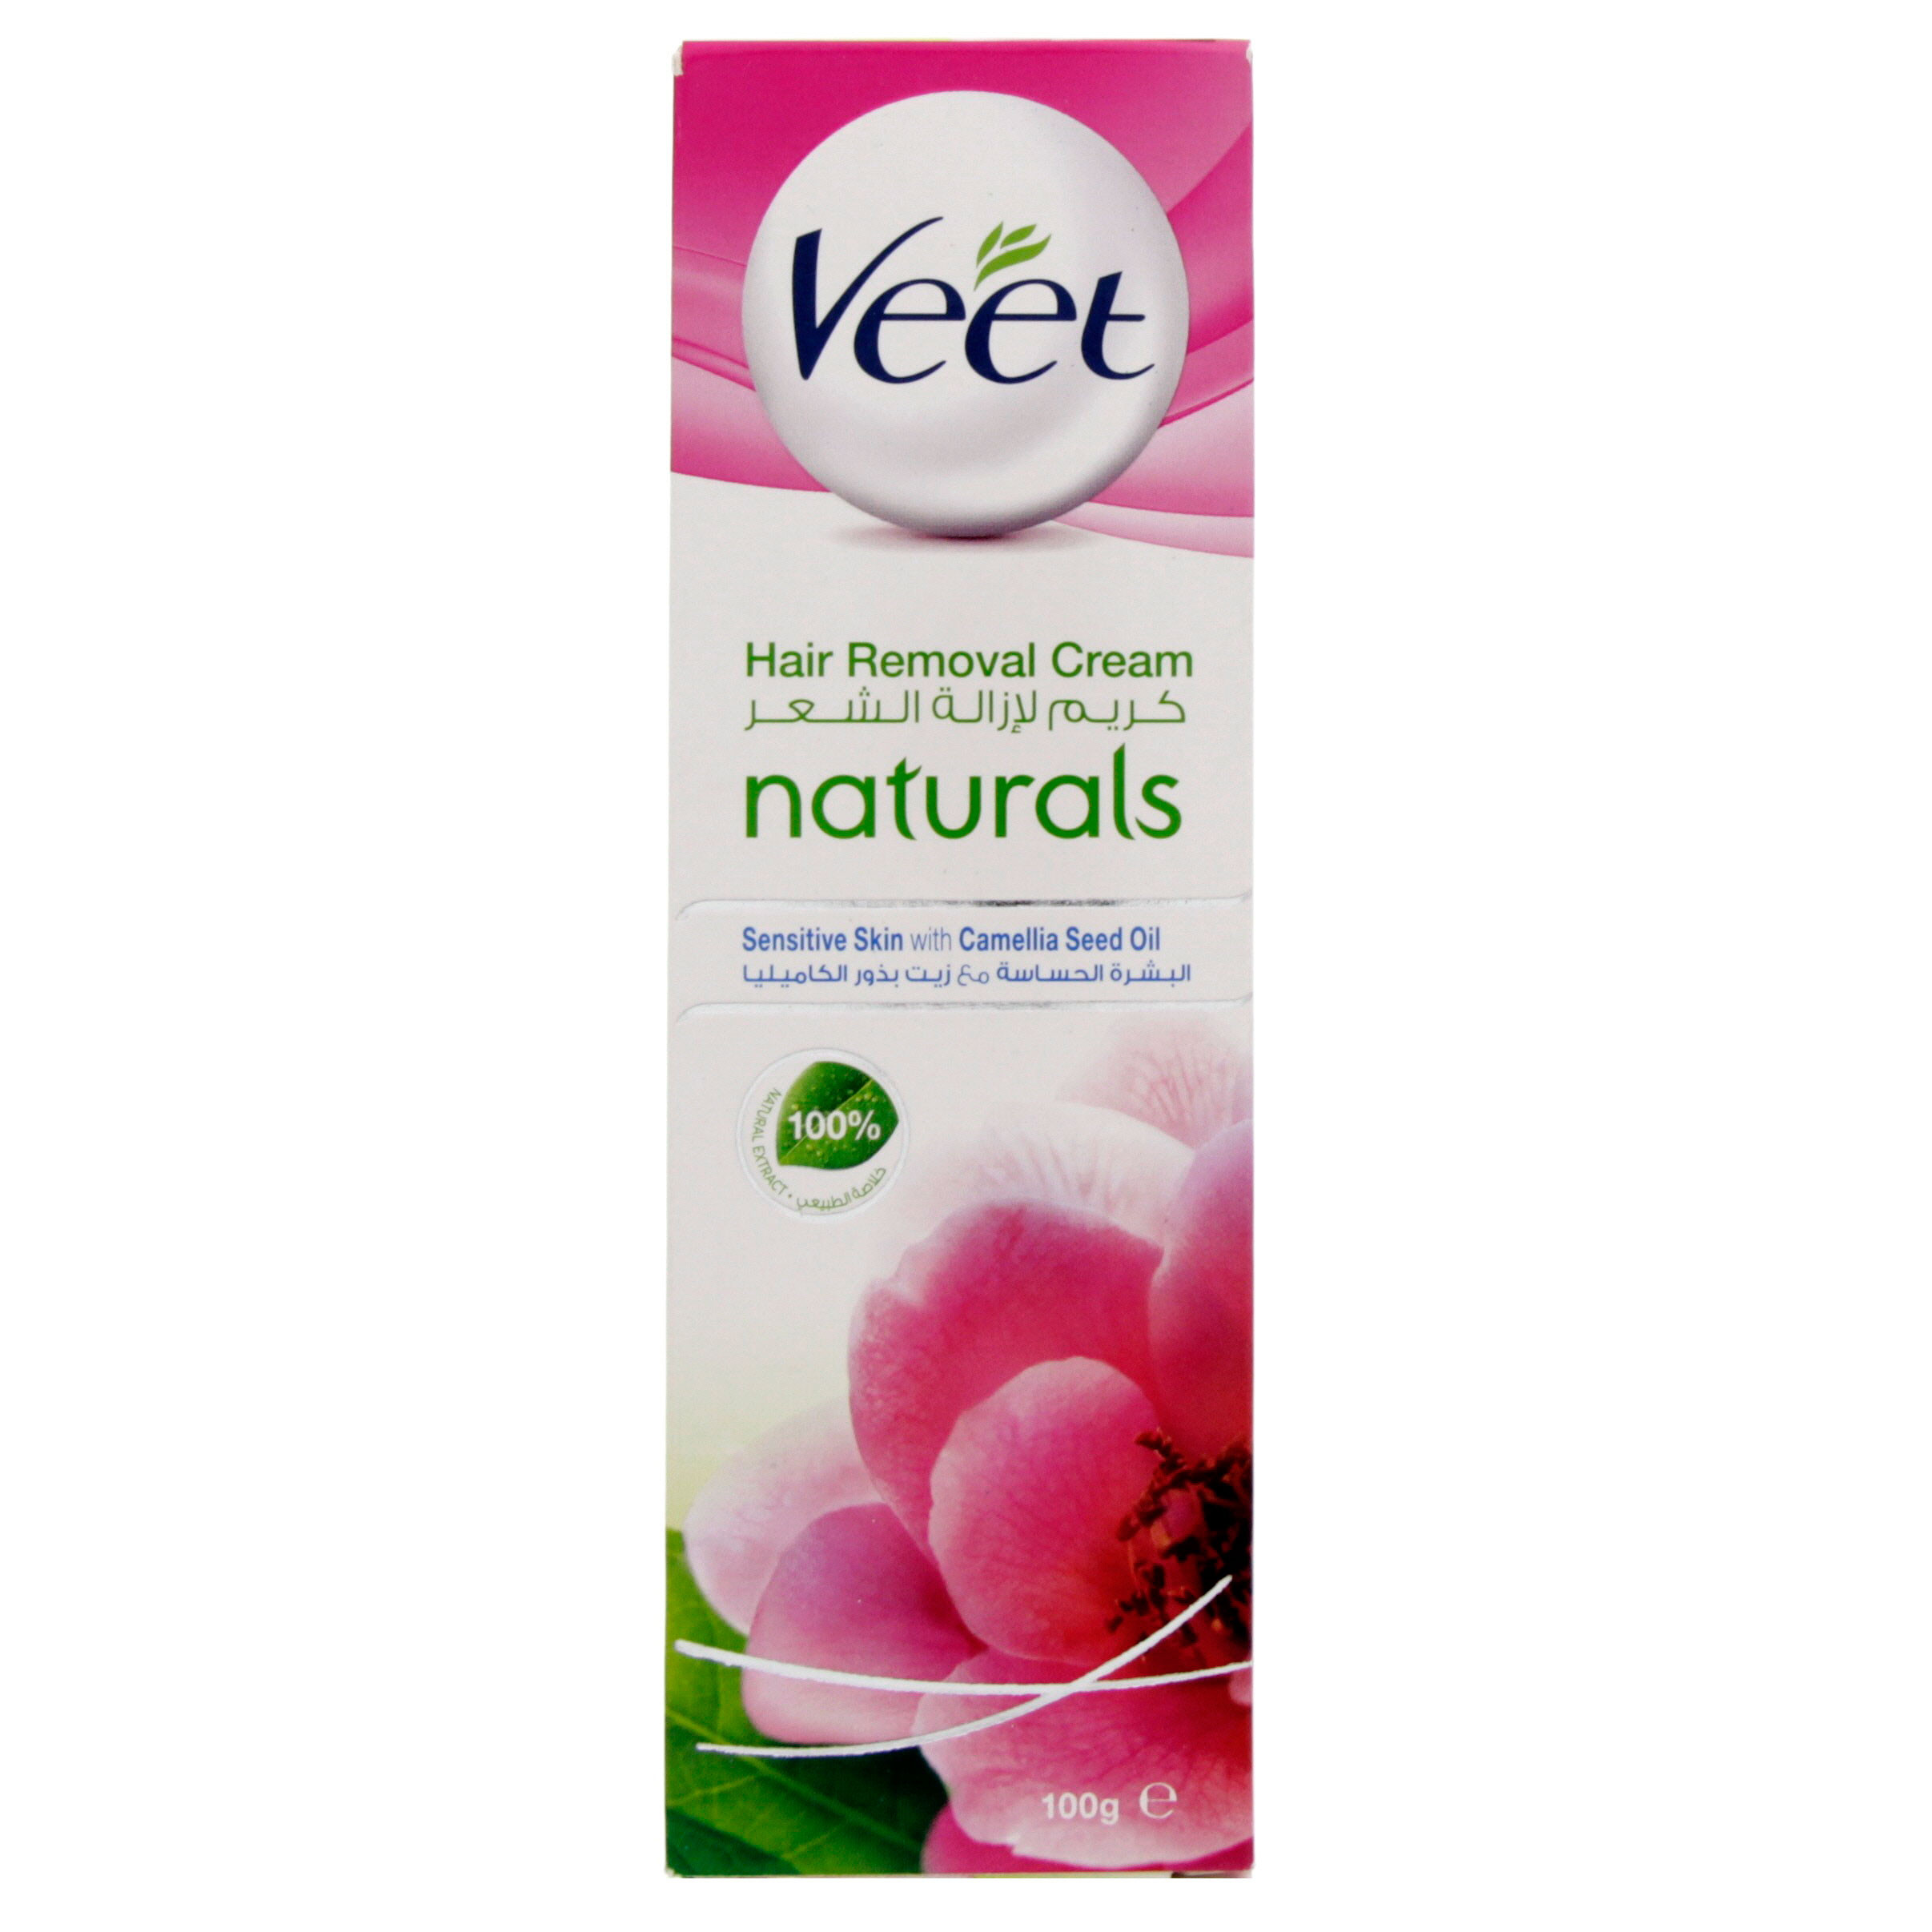 VEET HAIR REMOVAL CREAM 100G-NATURAL WITH CAMELLIA